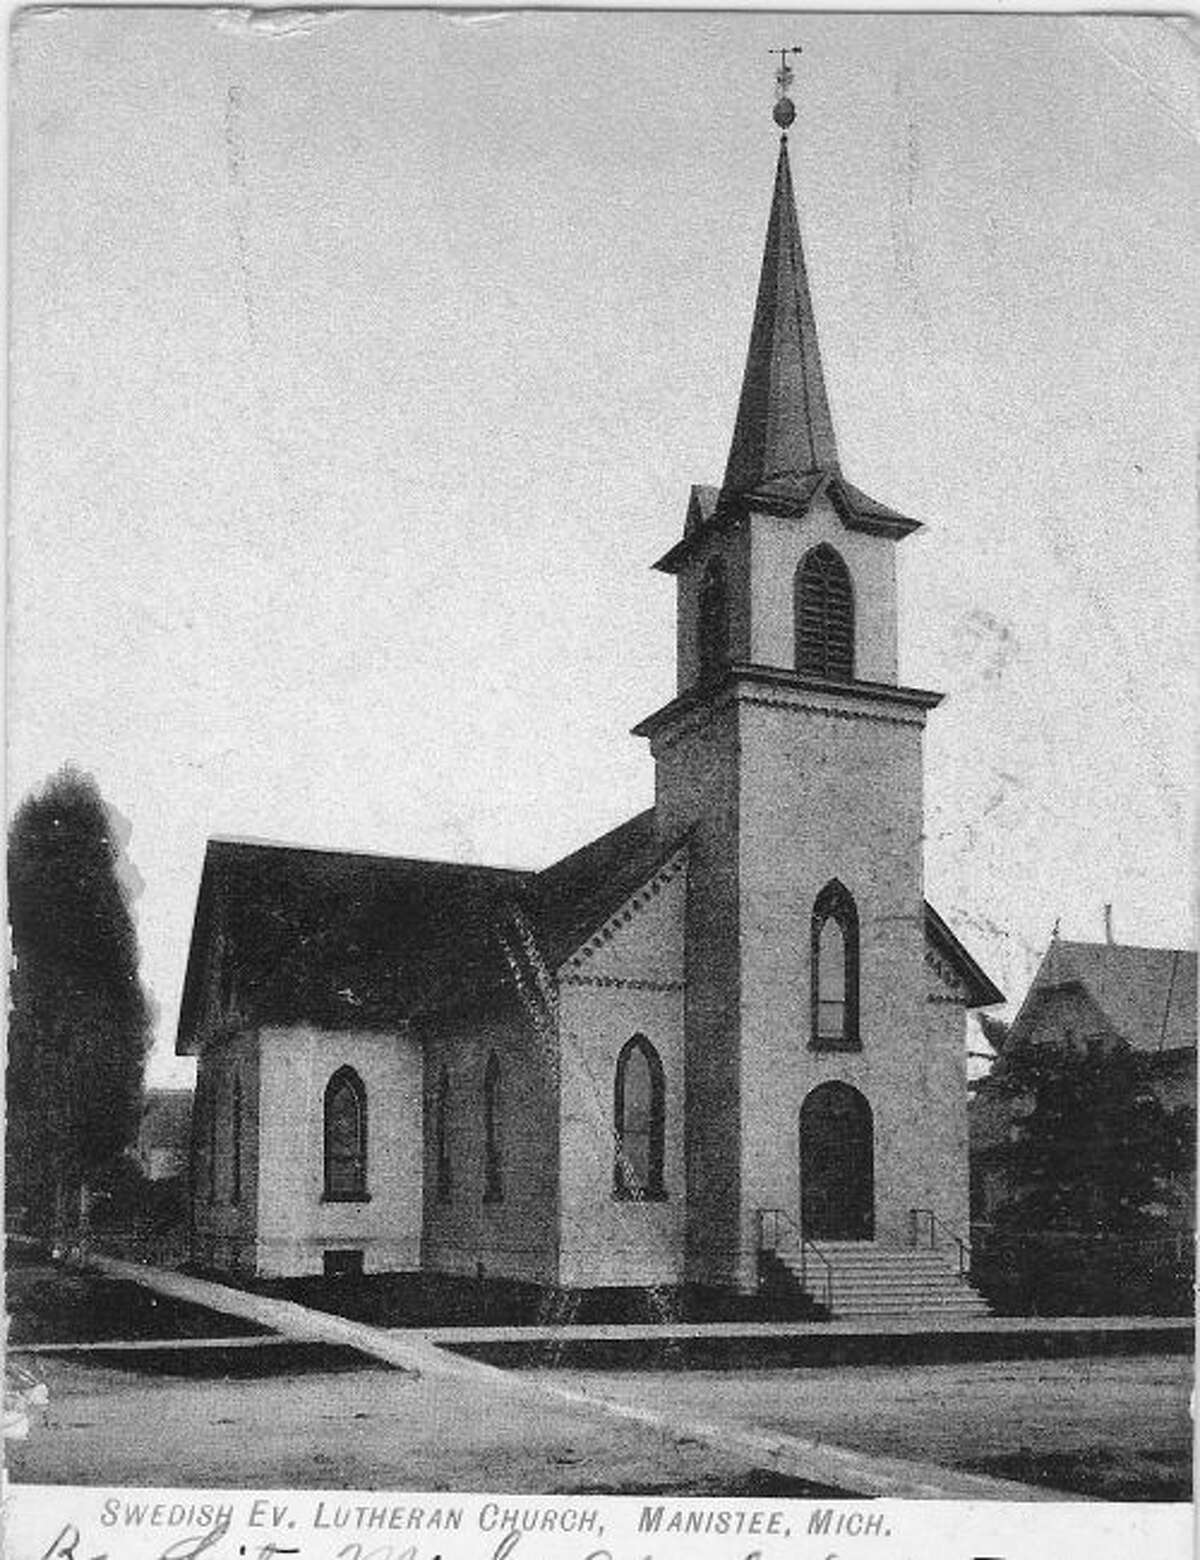 The Swedish Evangelical Lutheran Church in Manistee is shown in this early 1900 photograph.